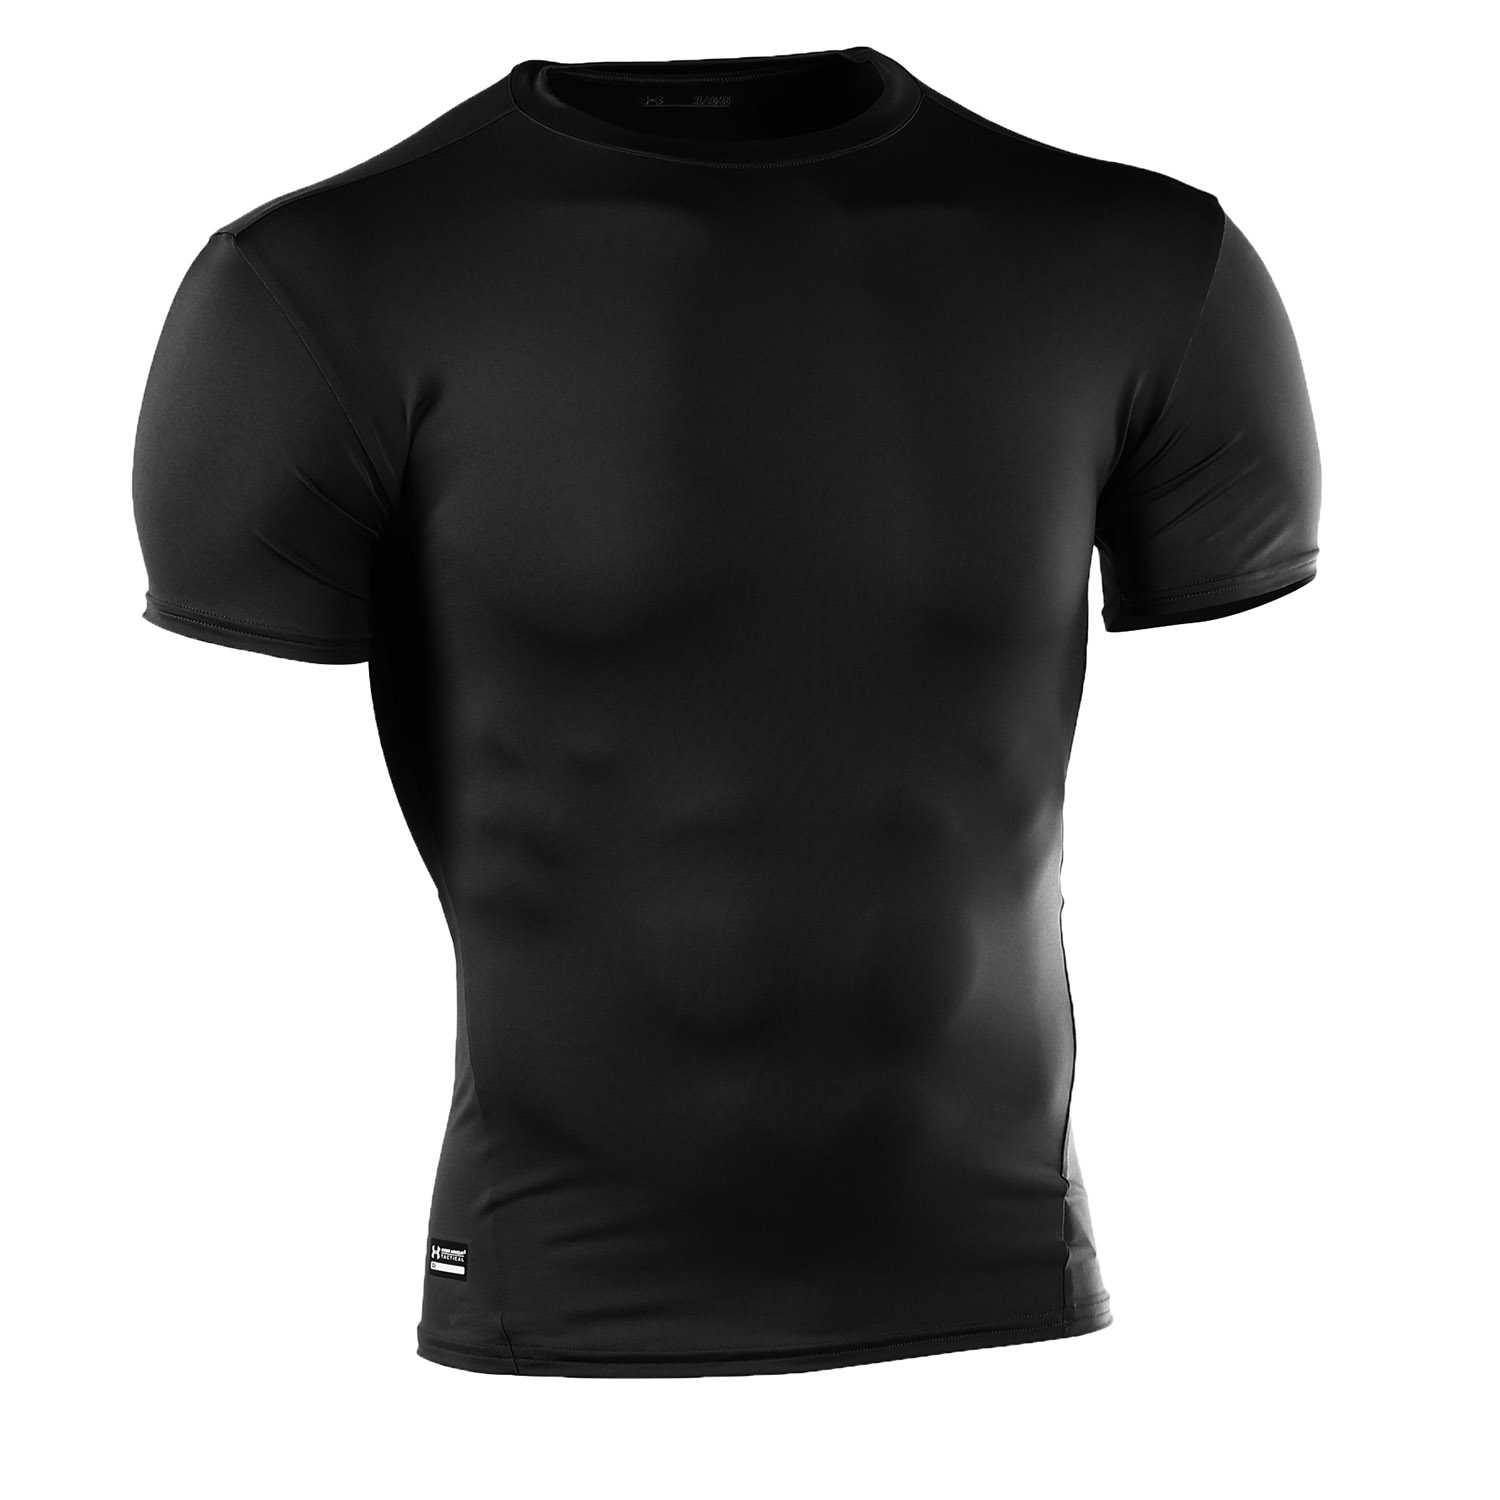 under armour heatgear compression t shirt. Black Bedroom Furniture Sets. Home Design Ideas